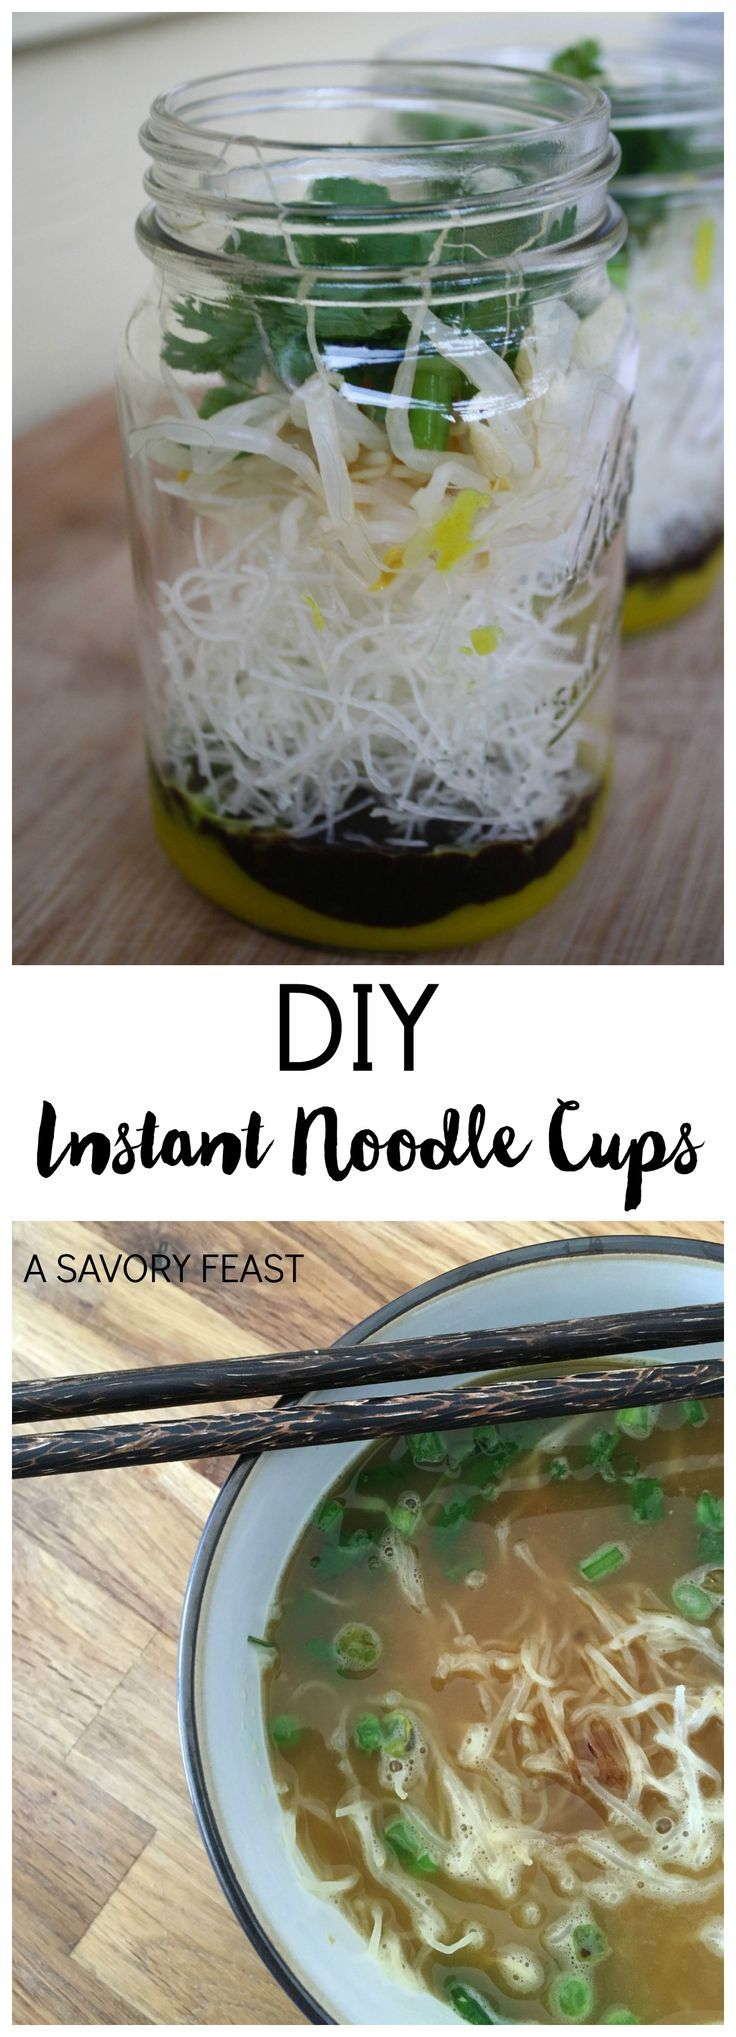 DIY Instant Noodle Cups // Need an easy, healthy lunch to make ahead? These cups are gluten free and packed with flavor!